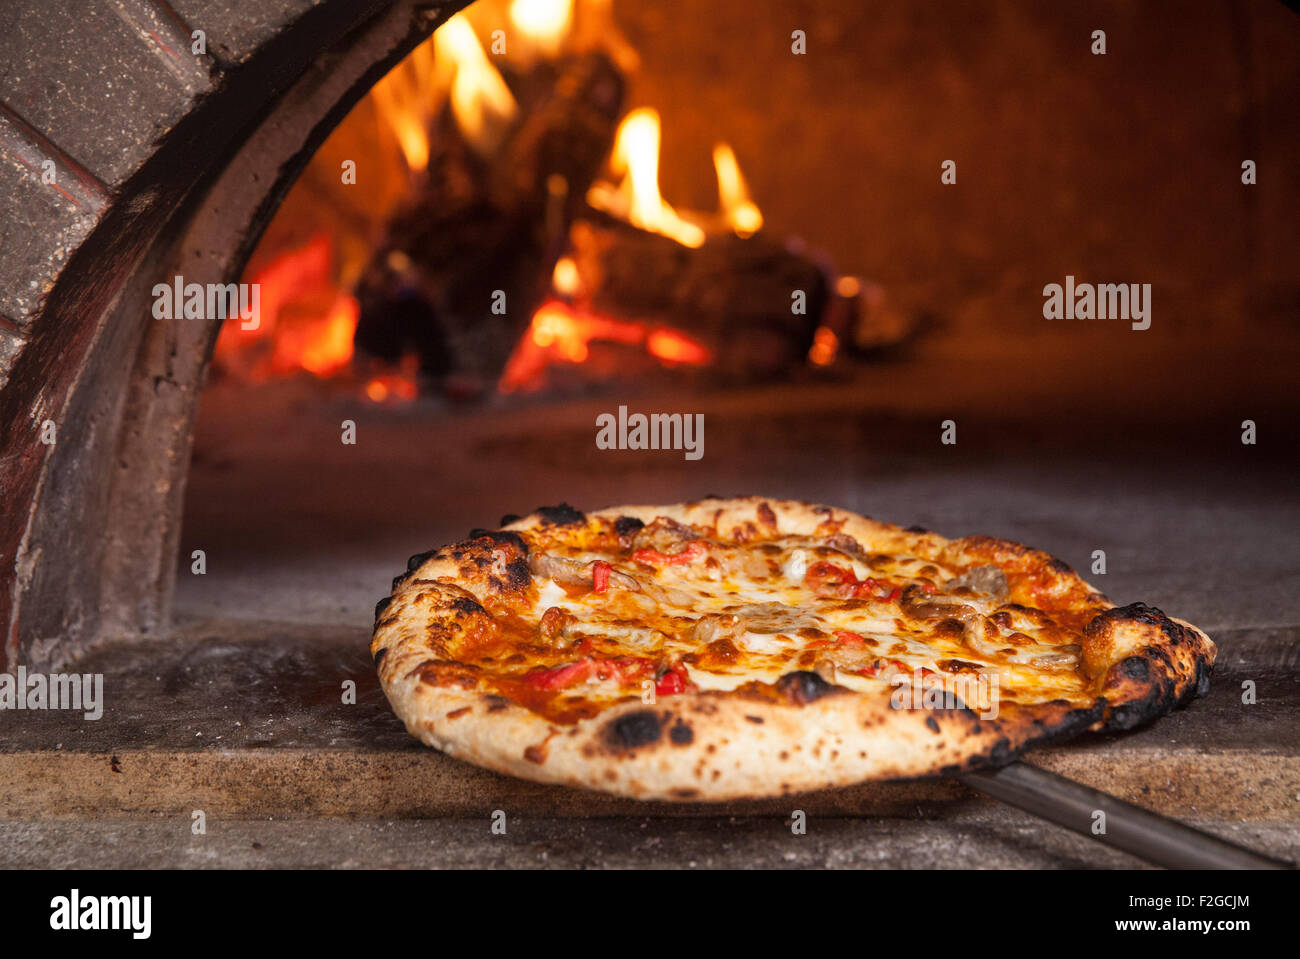 k se pizza an der vorderseite des holzofen pizza stockfoto bild 87642316 alamy. Black Bedroom Furniture Sets. Home Design Ideas